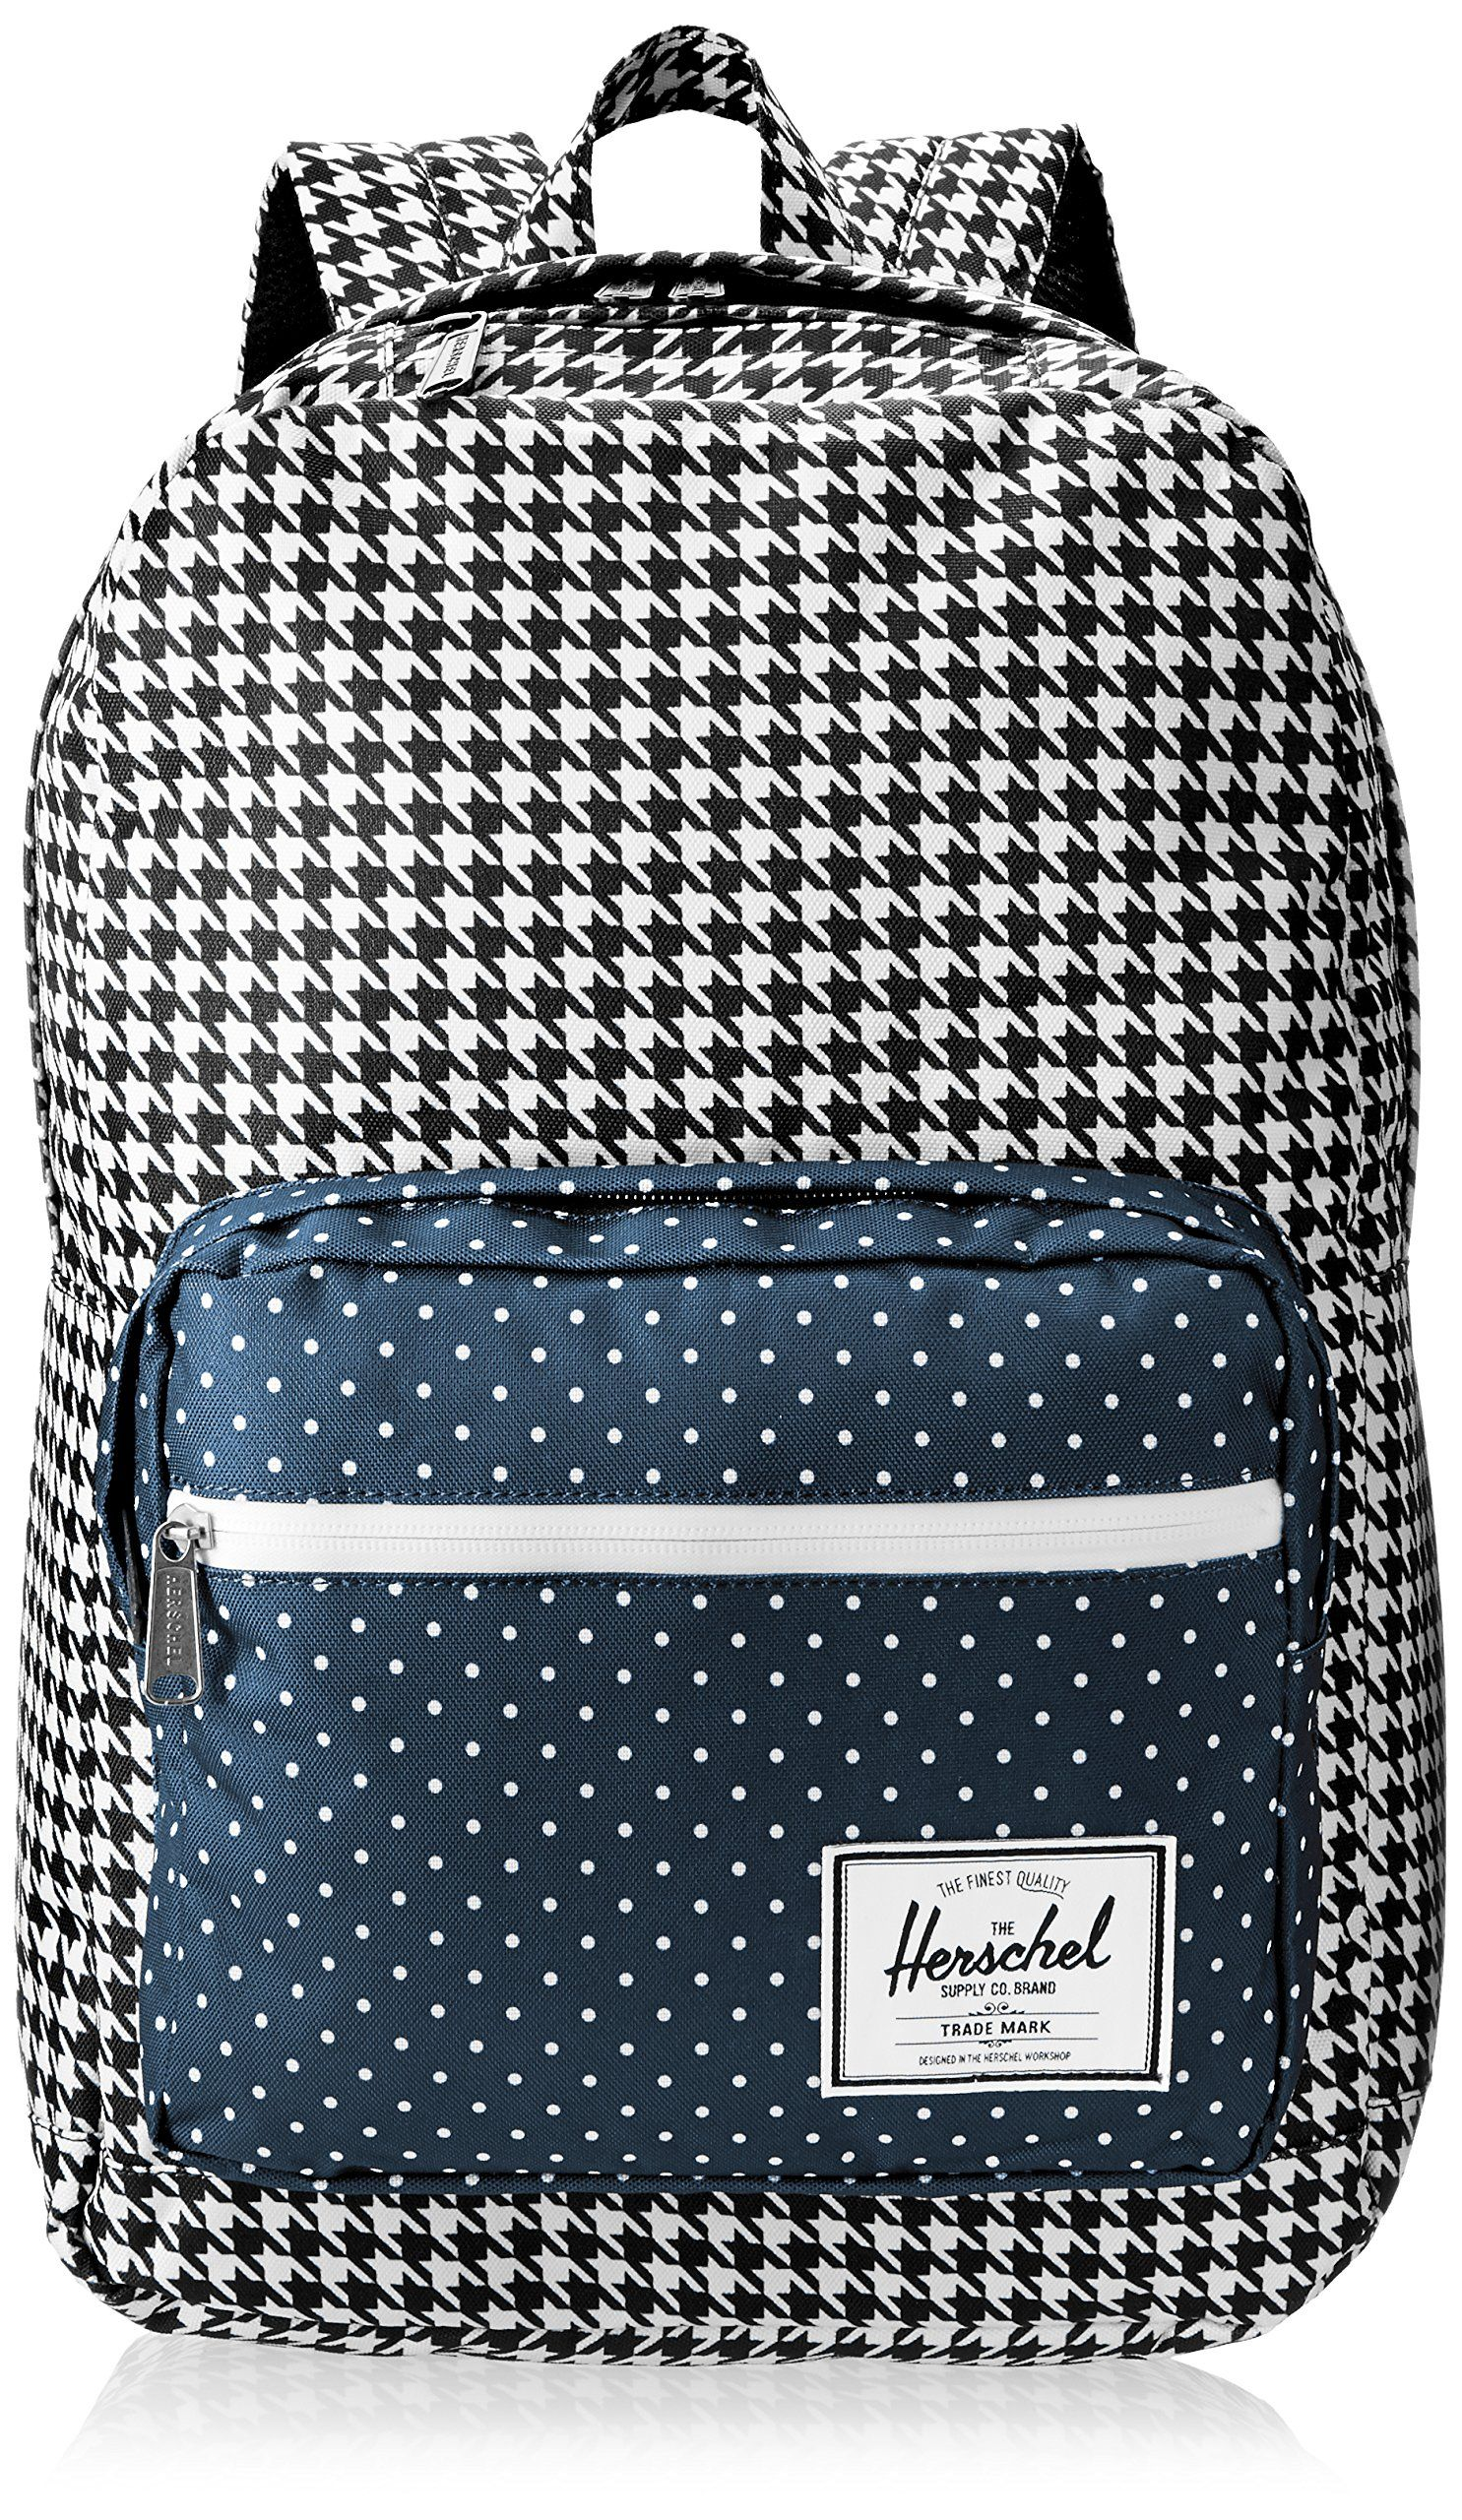 8d1c7542fa Amazon.com  Herschel Supply Co. Pop Quiz